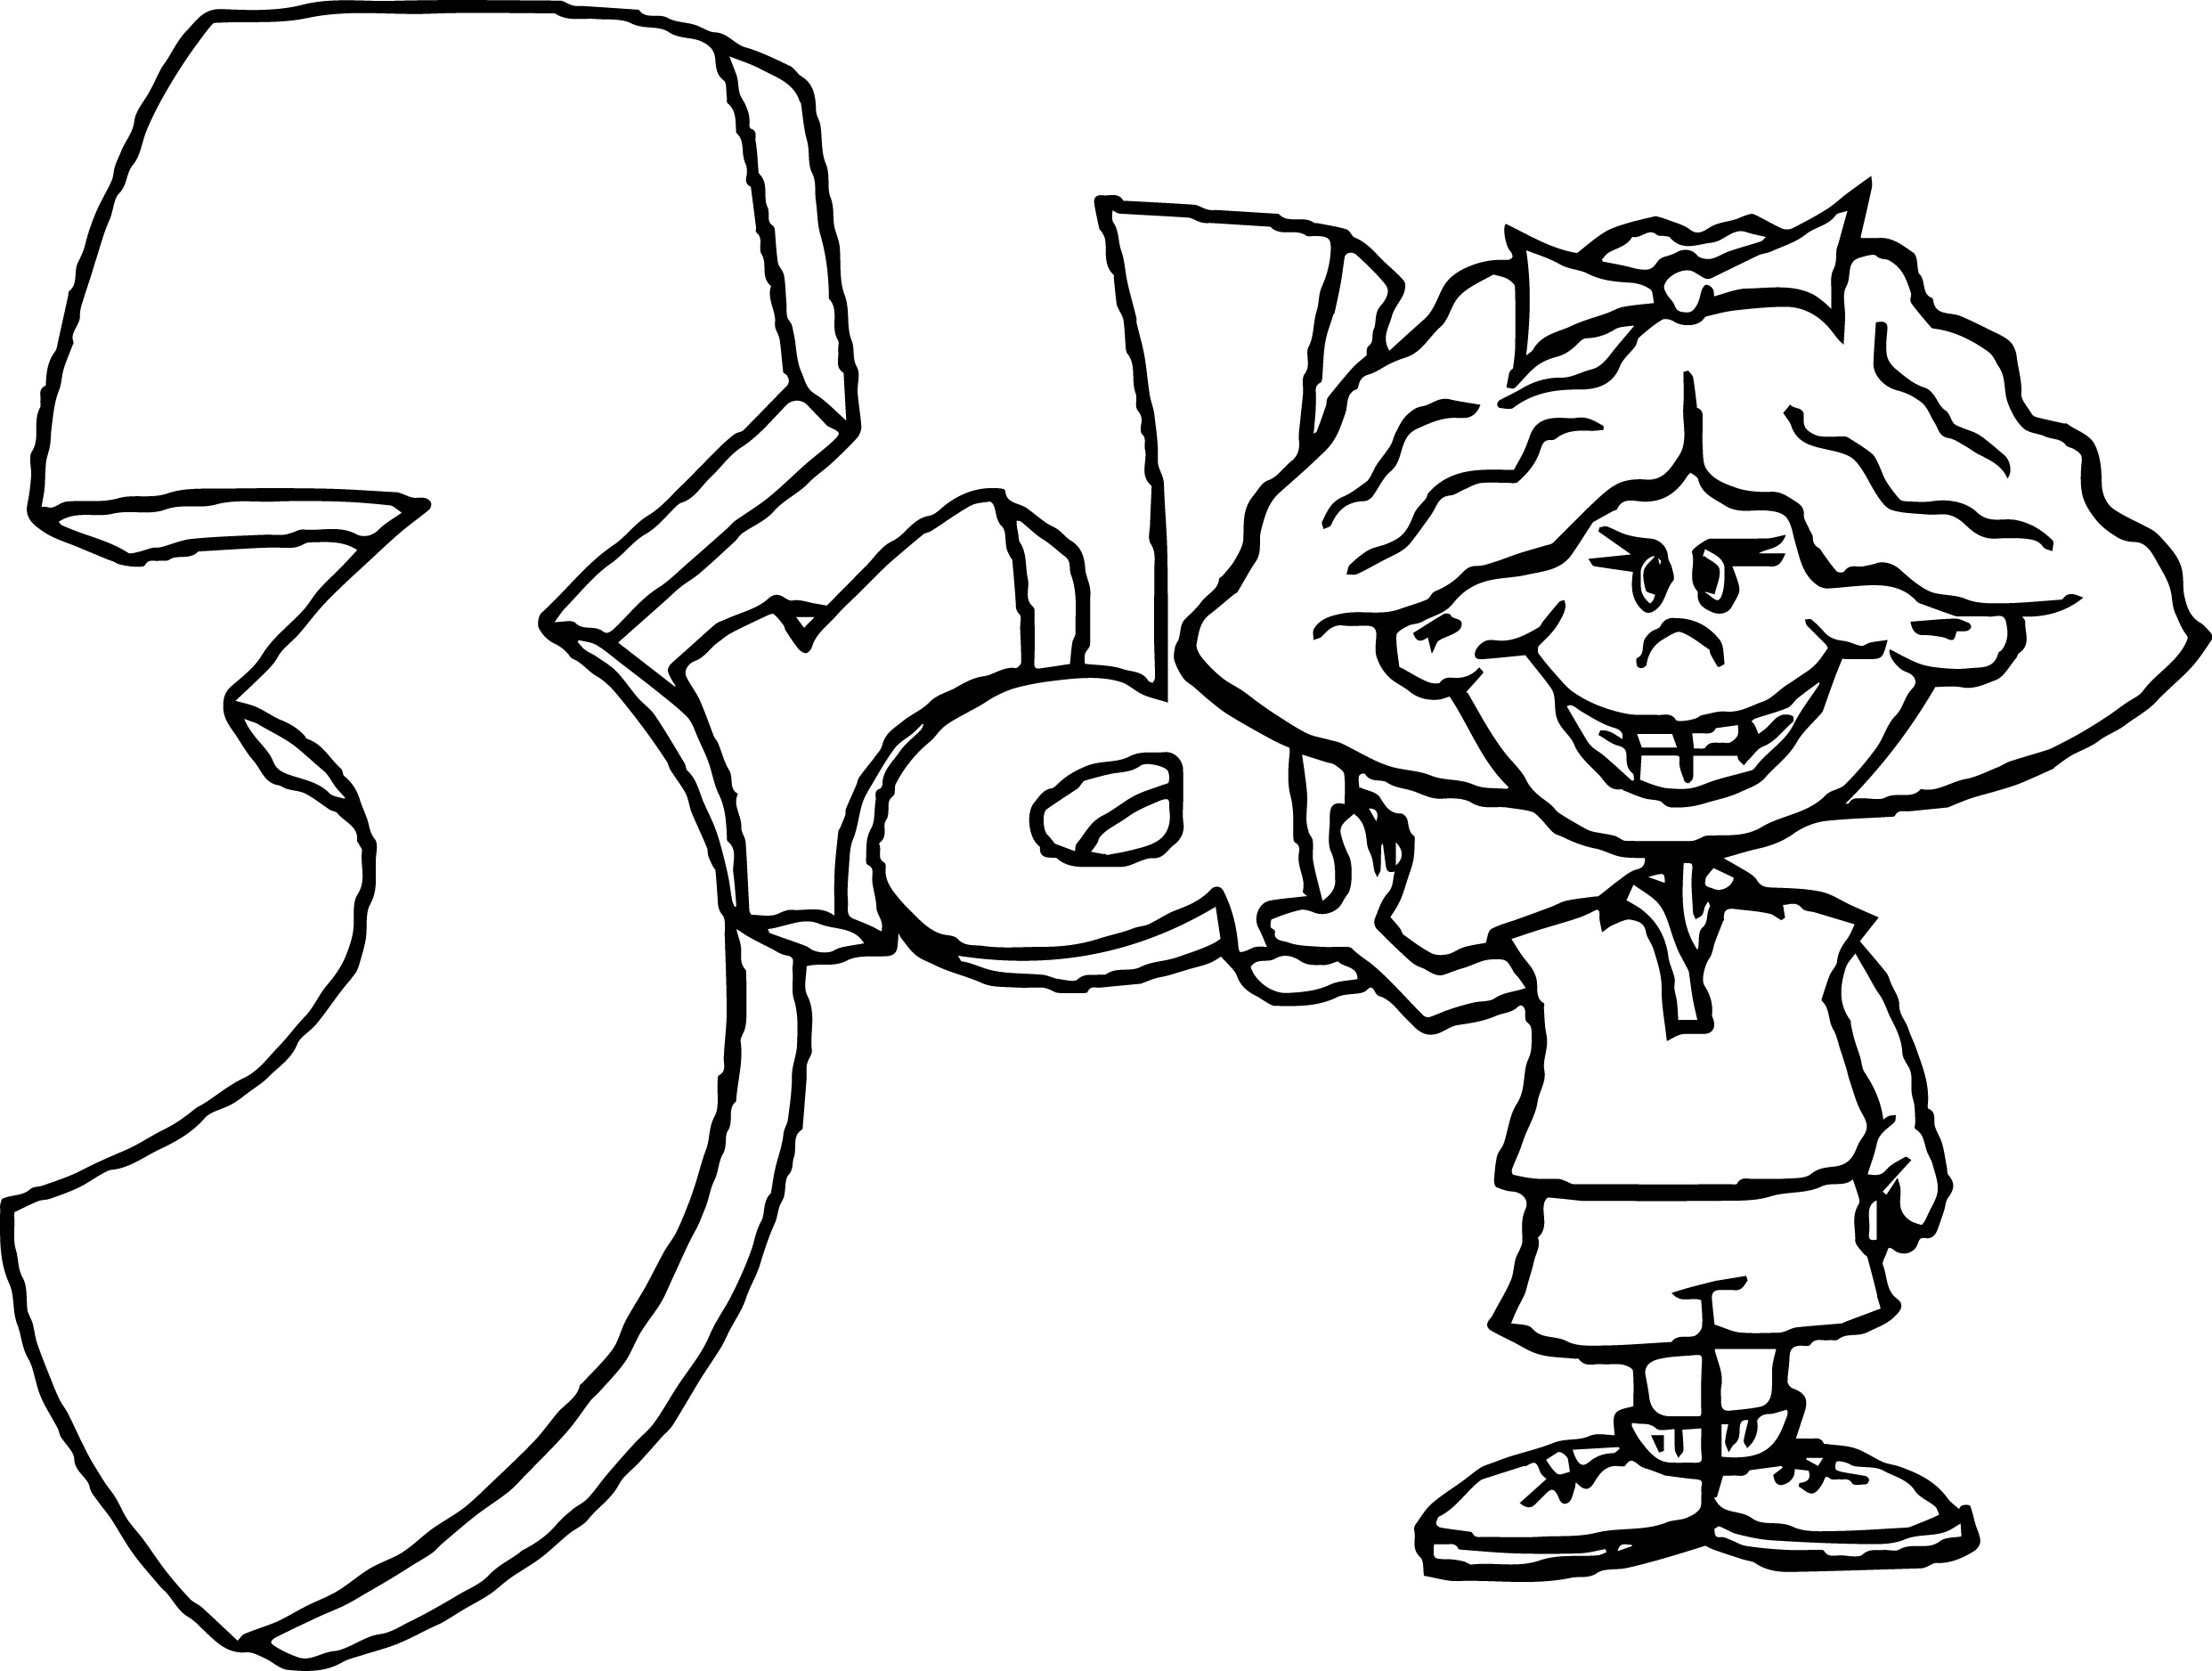 coloring pages for 3rd graders nice wild about text 3rd grade coloring page coloring graders for pages coloring 3rd